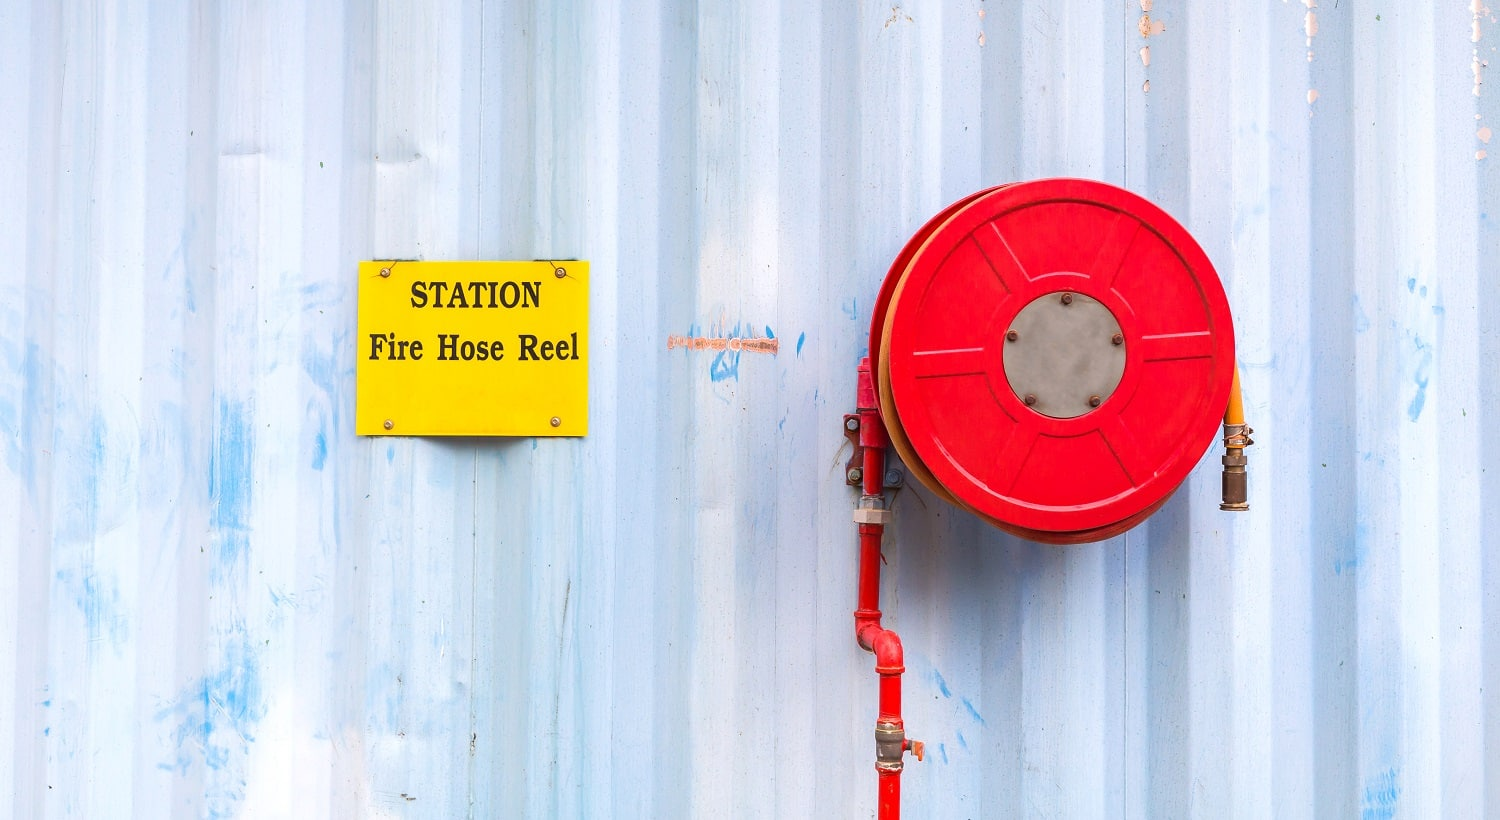 fire hose reel in metal wall industrail image